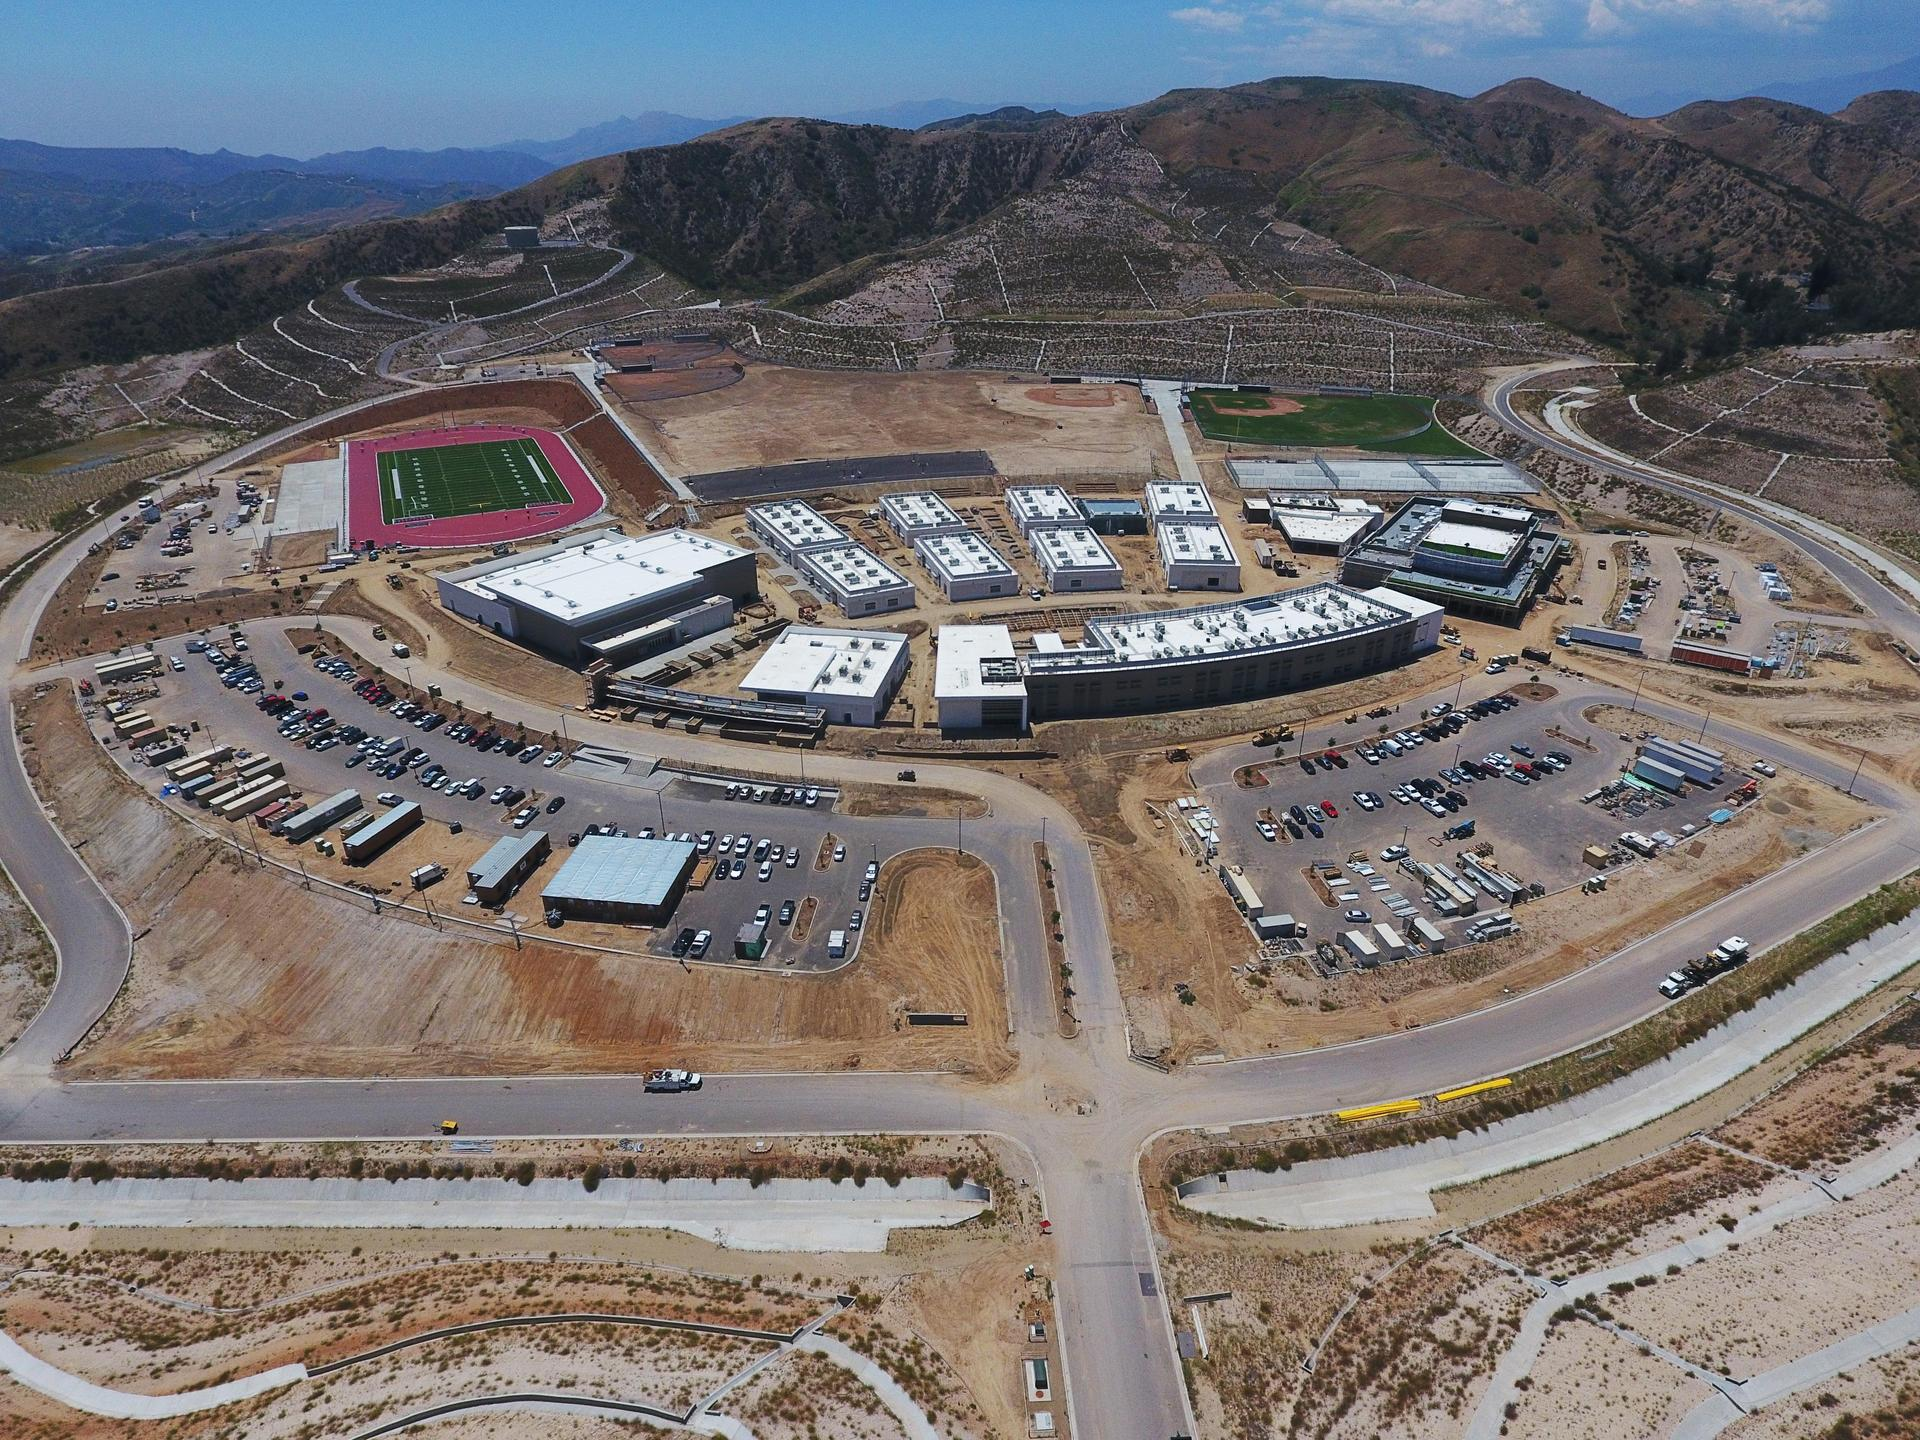 Aerial view of the entire campus of Castaic High School